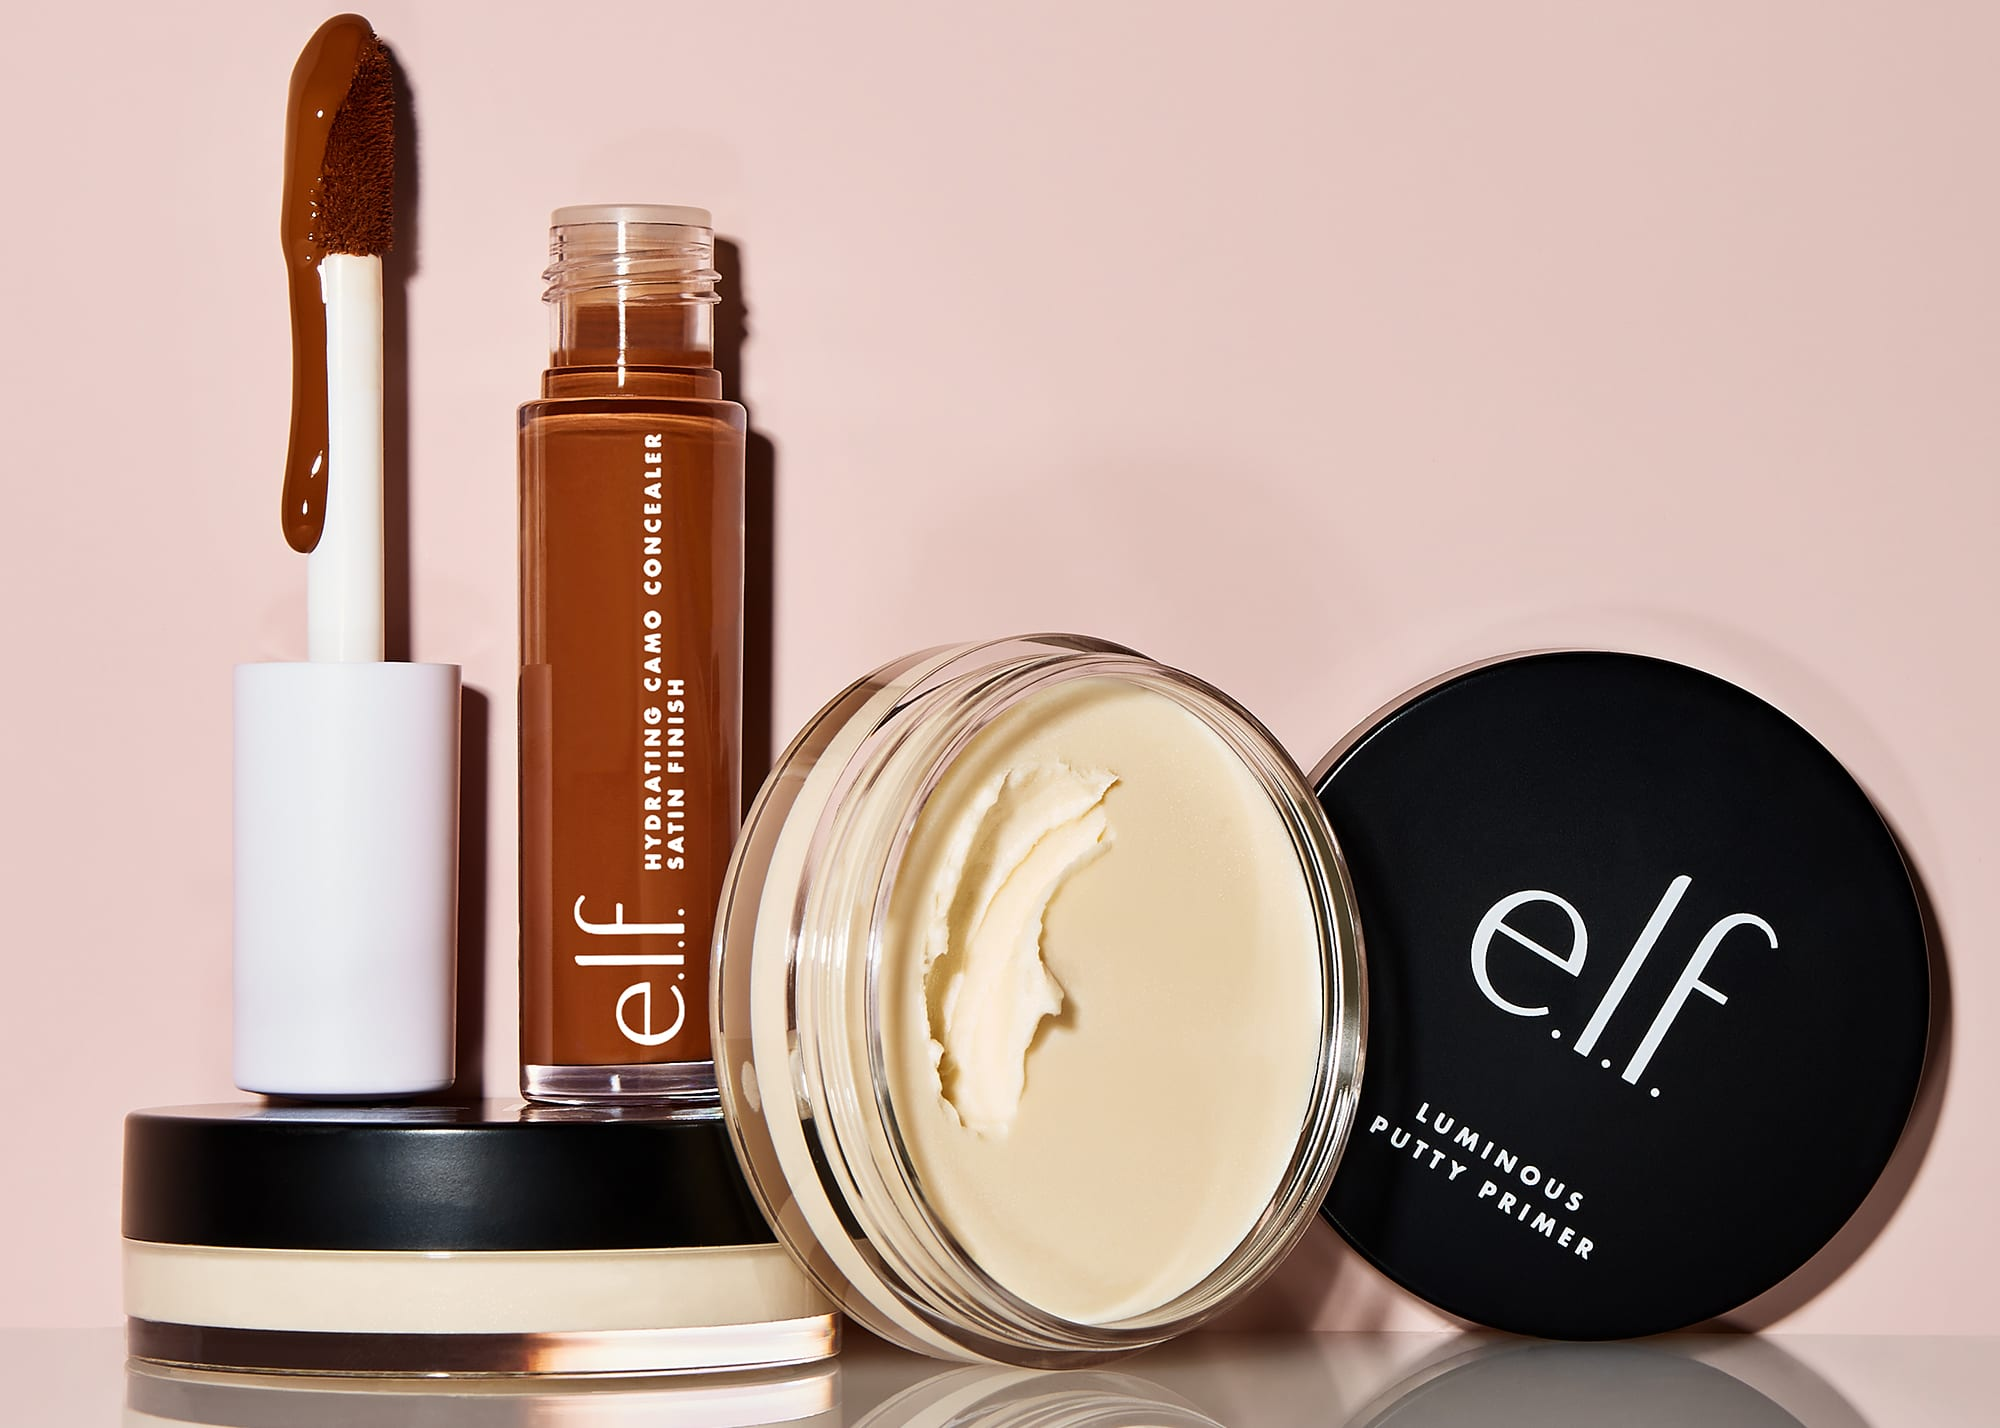 E.l.f. Beauty (ELF) 4Q 2020 earnings boosted by online sales